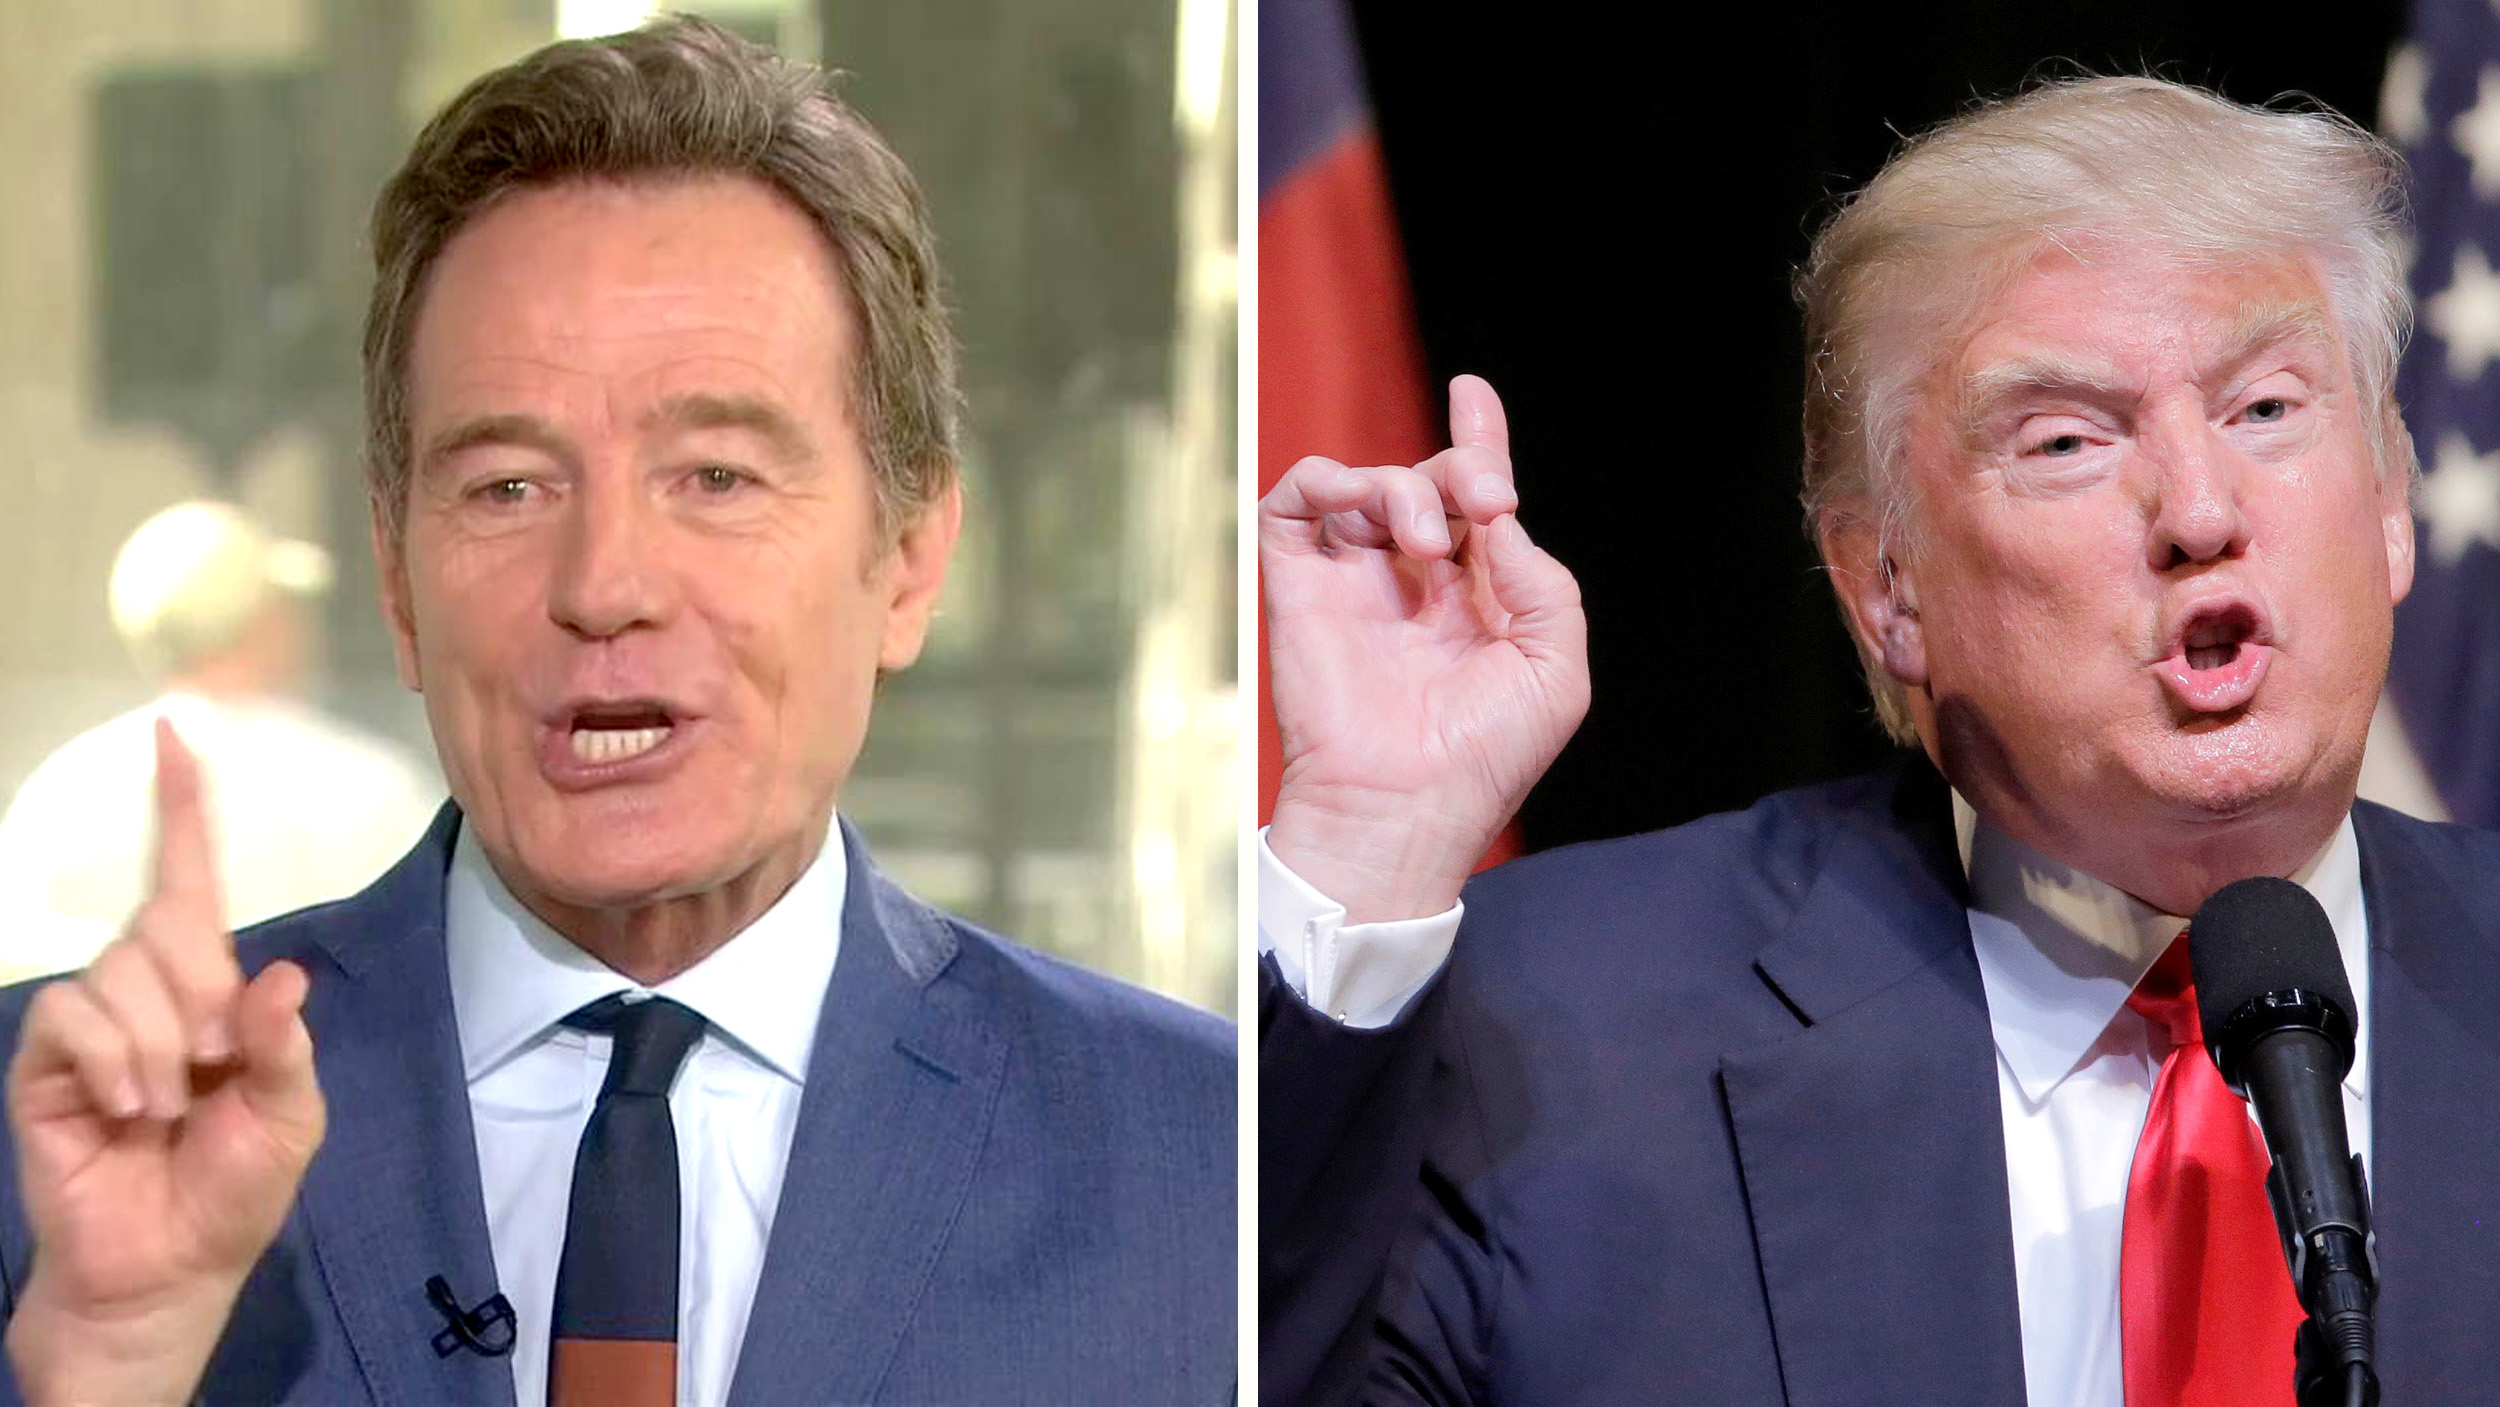 Bryan Cranston Says He Wants To Play Donald Trump Watch